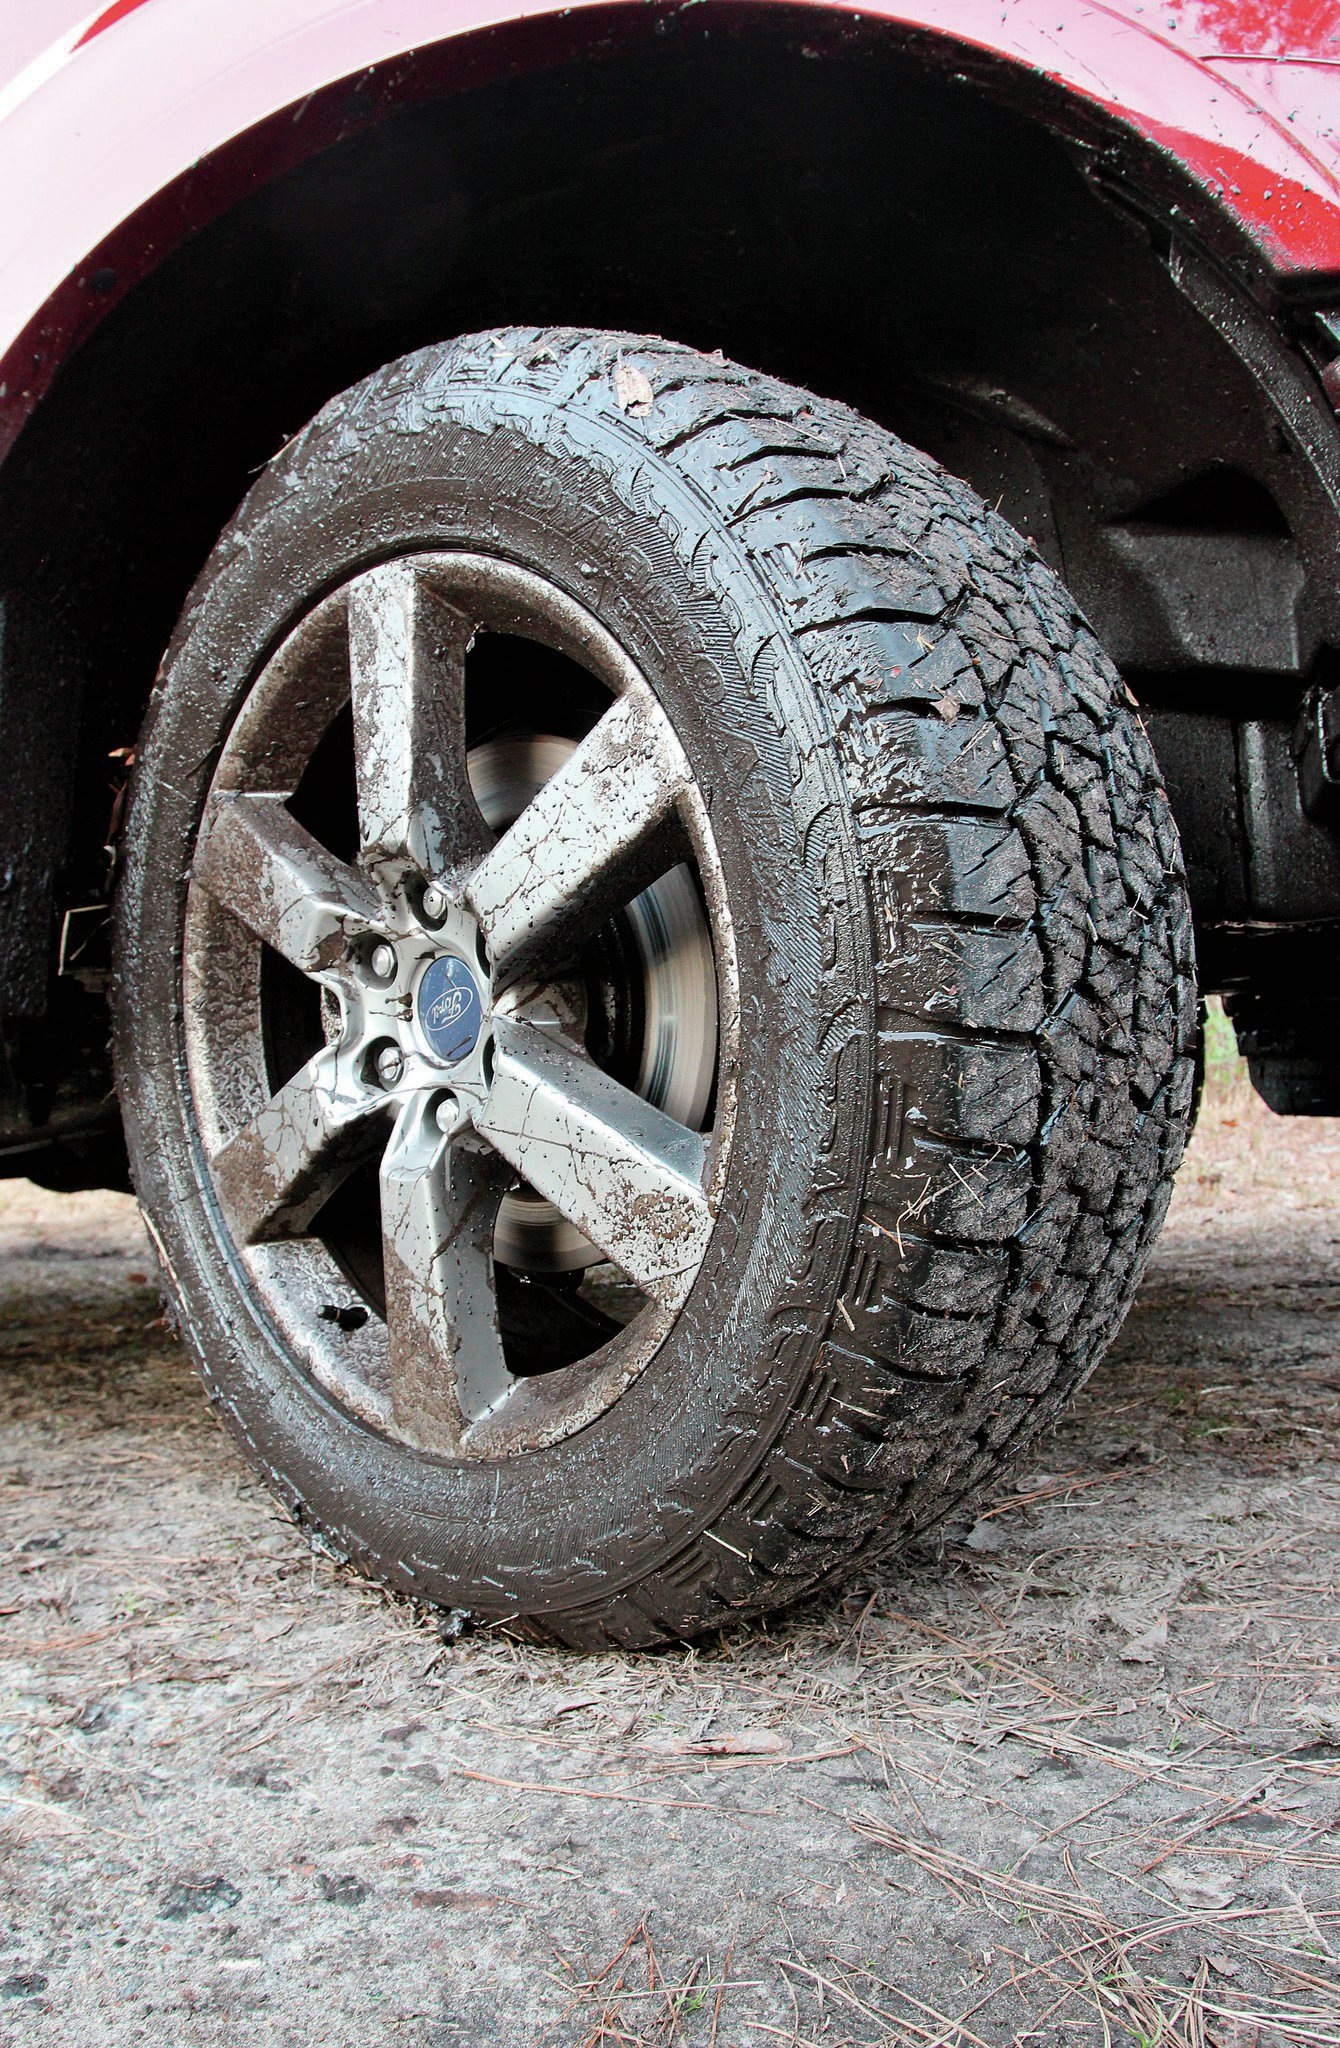 Hankook Dynapro Atm 275 55r20 >> Our F 150 Was Fit With P275 55r20 Hankook Dynapro Atm Tires They